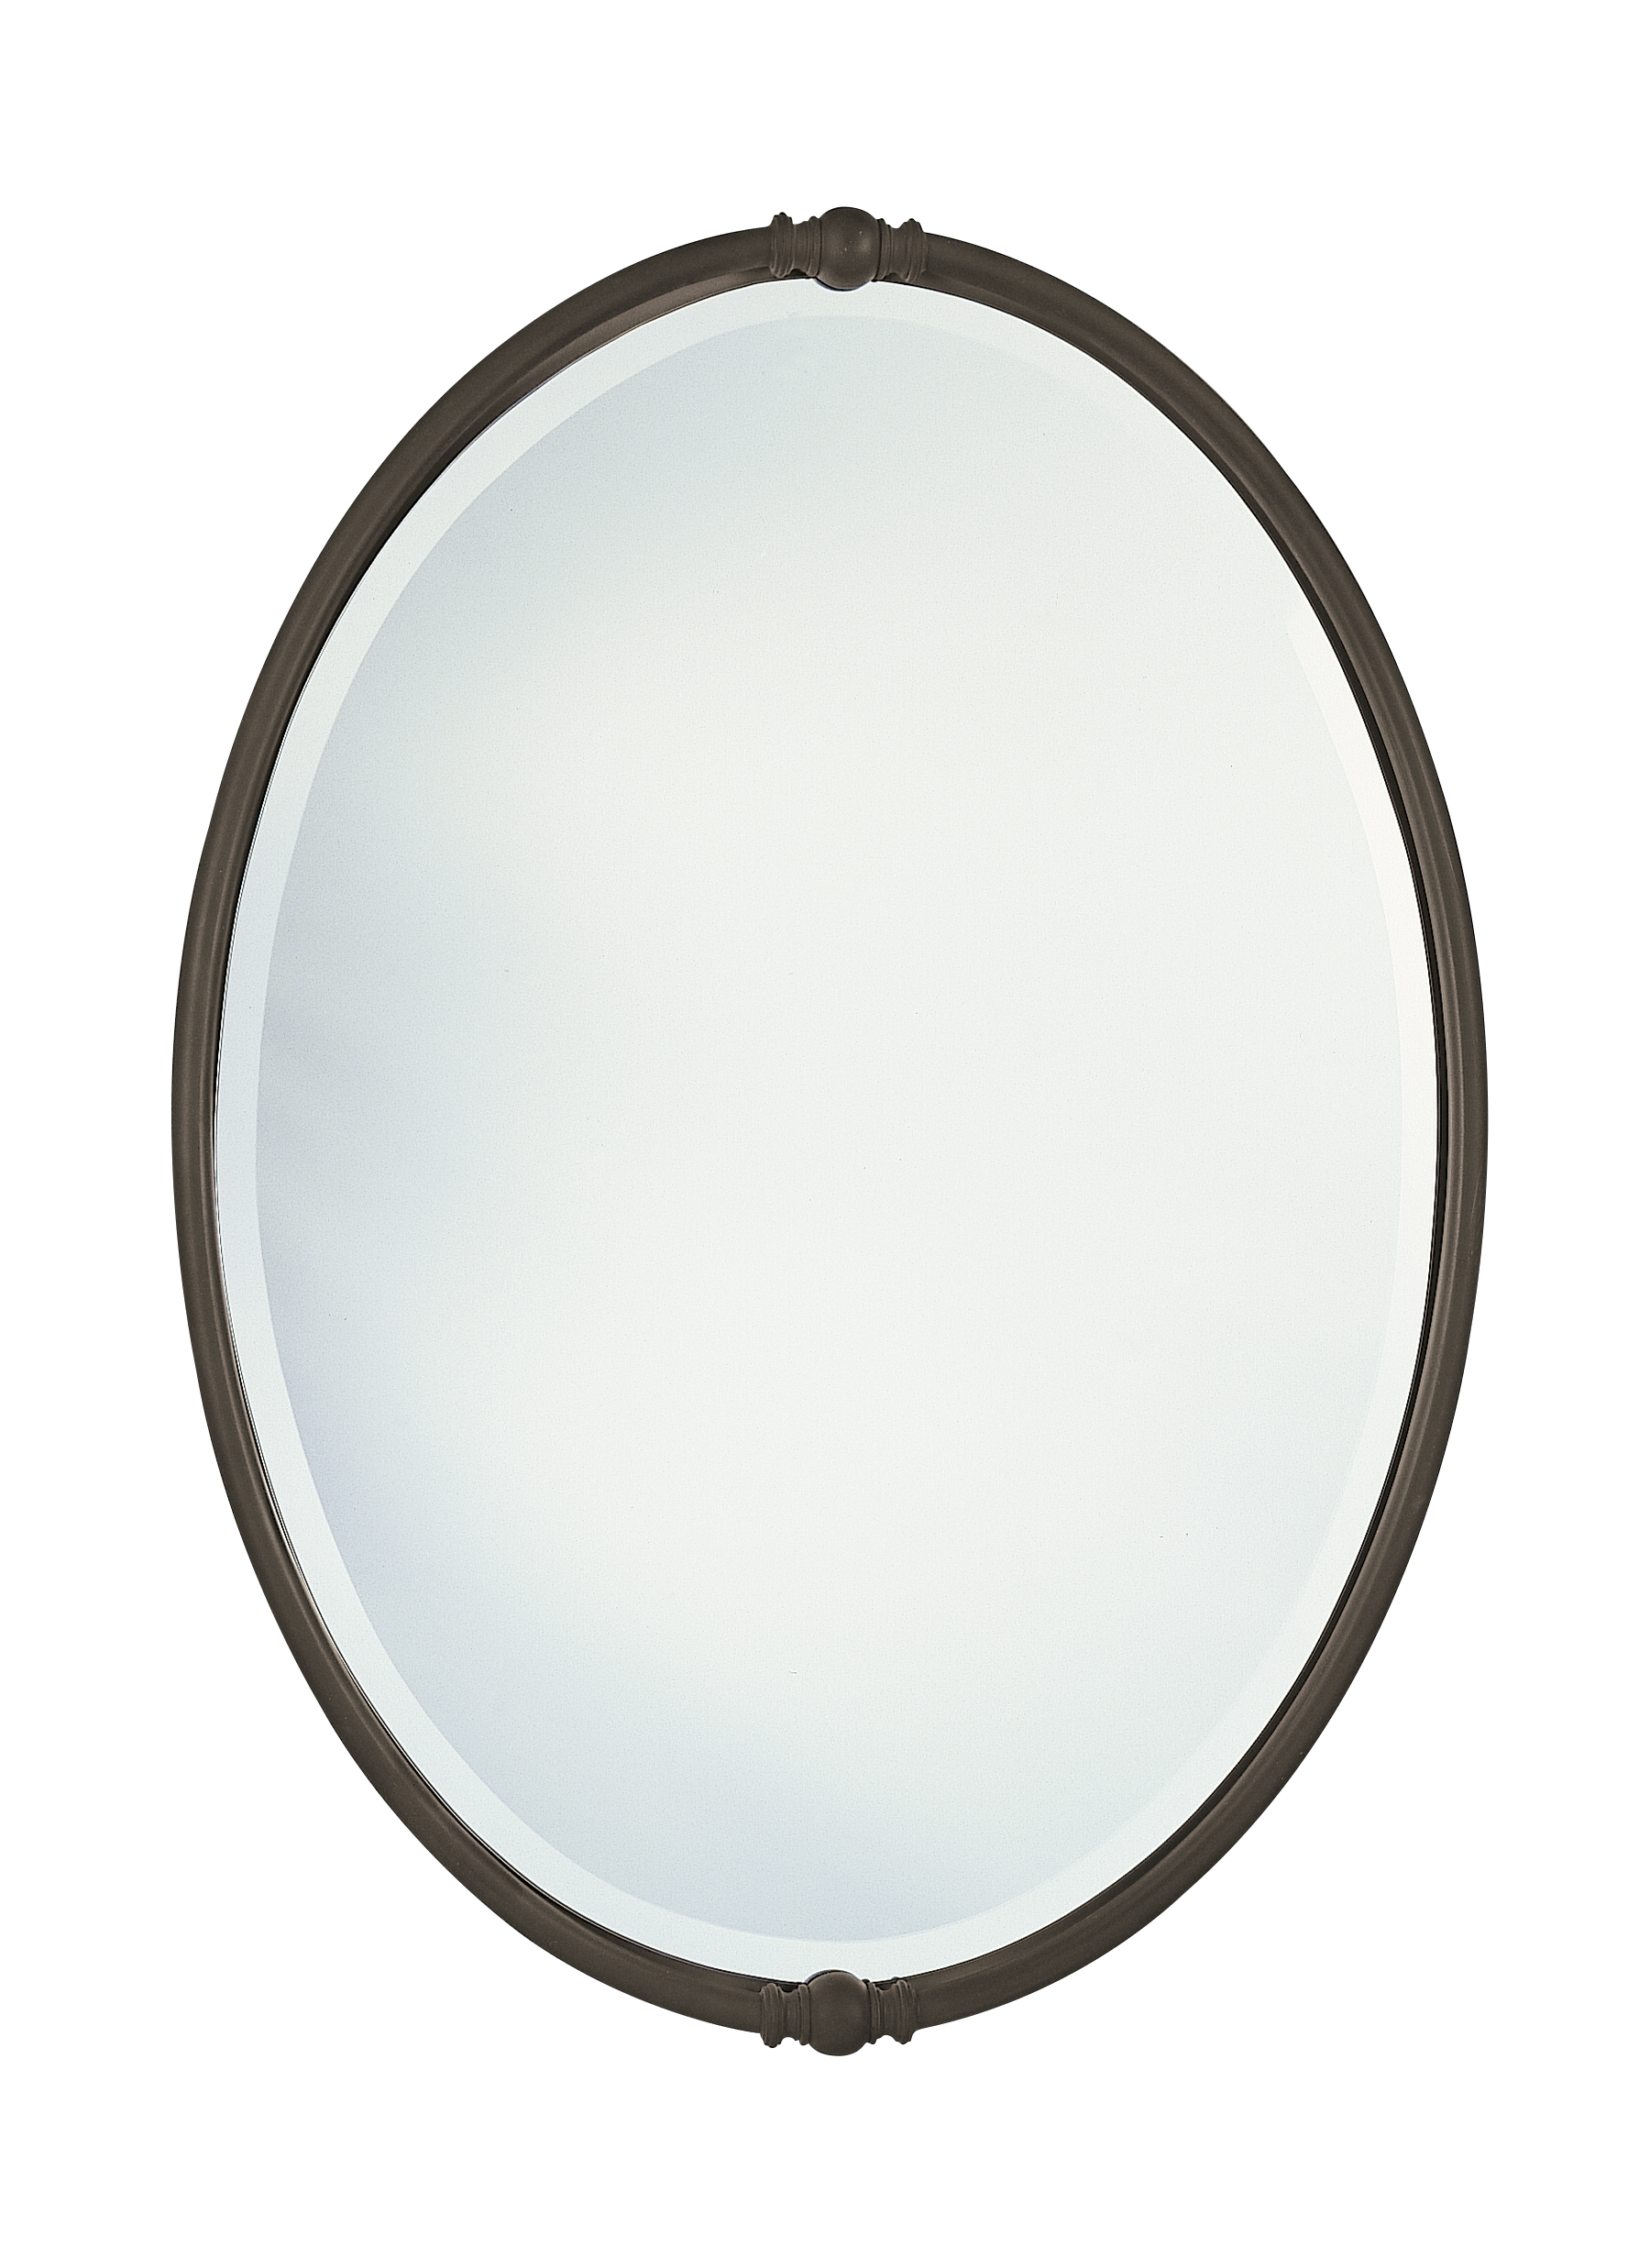 MR1044ORBOil Rubbed Bronze MirrorOil